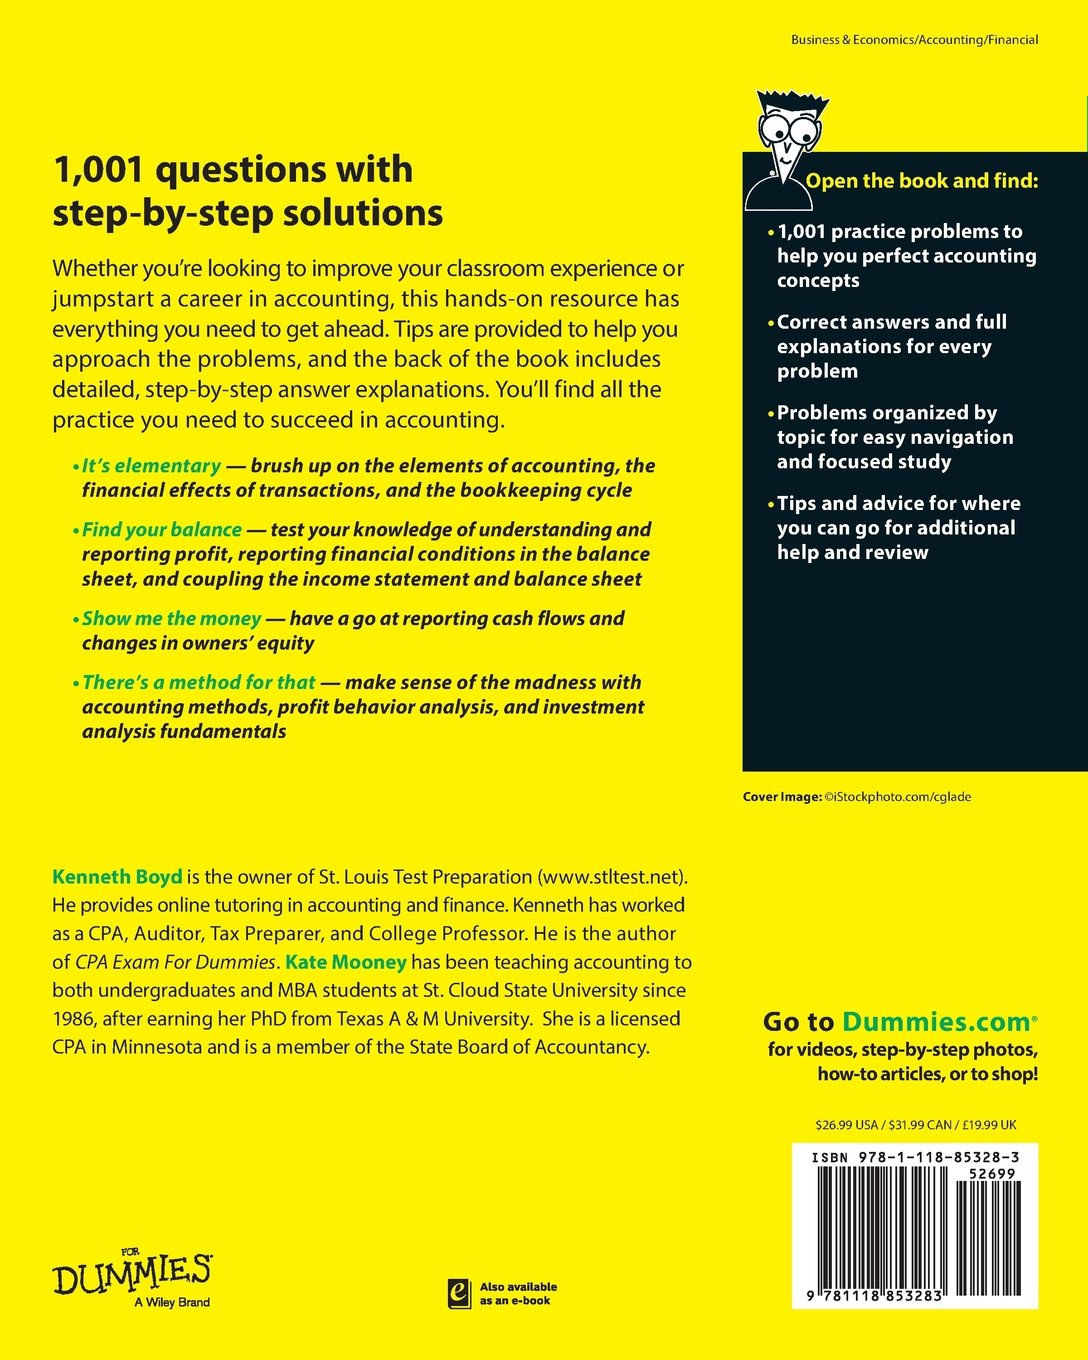 1, 001 Accounting Practice Problems For Dummies: Amazon.co.uk: Kenneth  Boyd, Kate Mooney: 9781118853283: Books